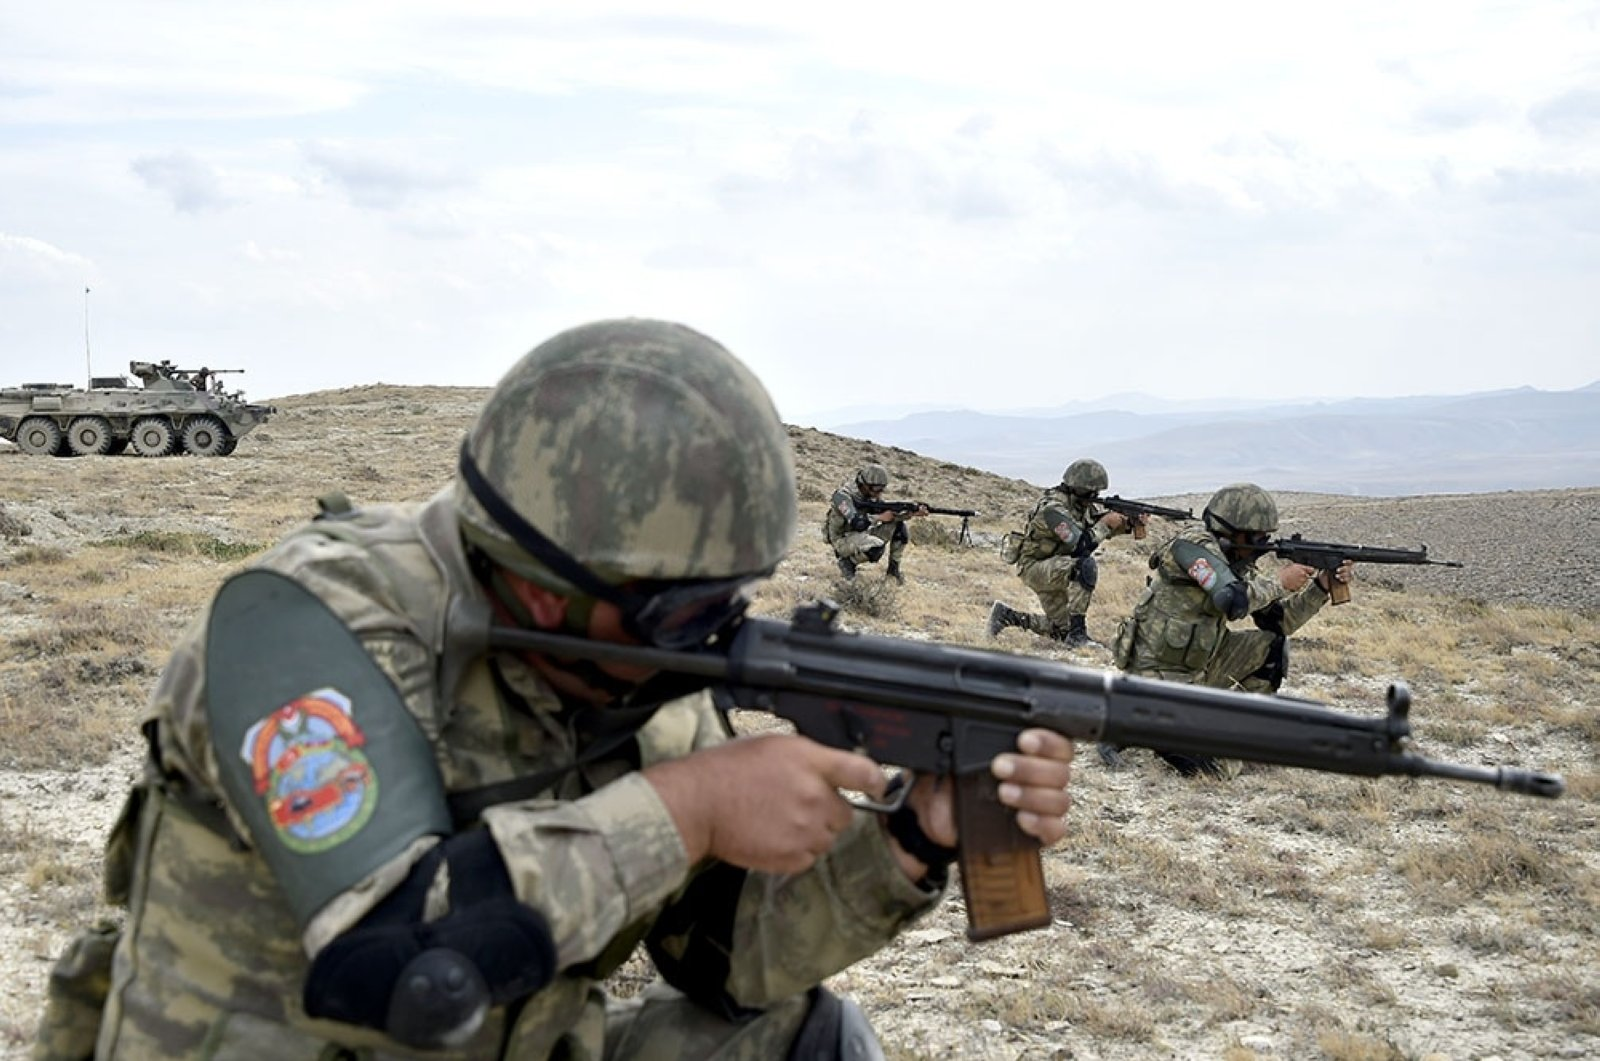 Soldiers take aim during the Turkey-Azerbaijan joint military drills in Baku, Azerbaijan, Aug. 6, 2020. (AA Photo)